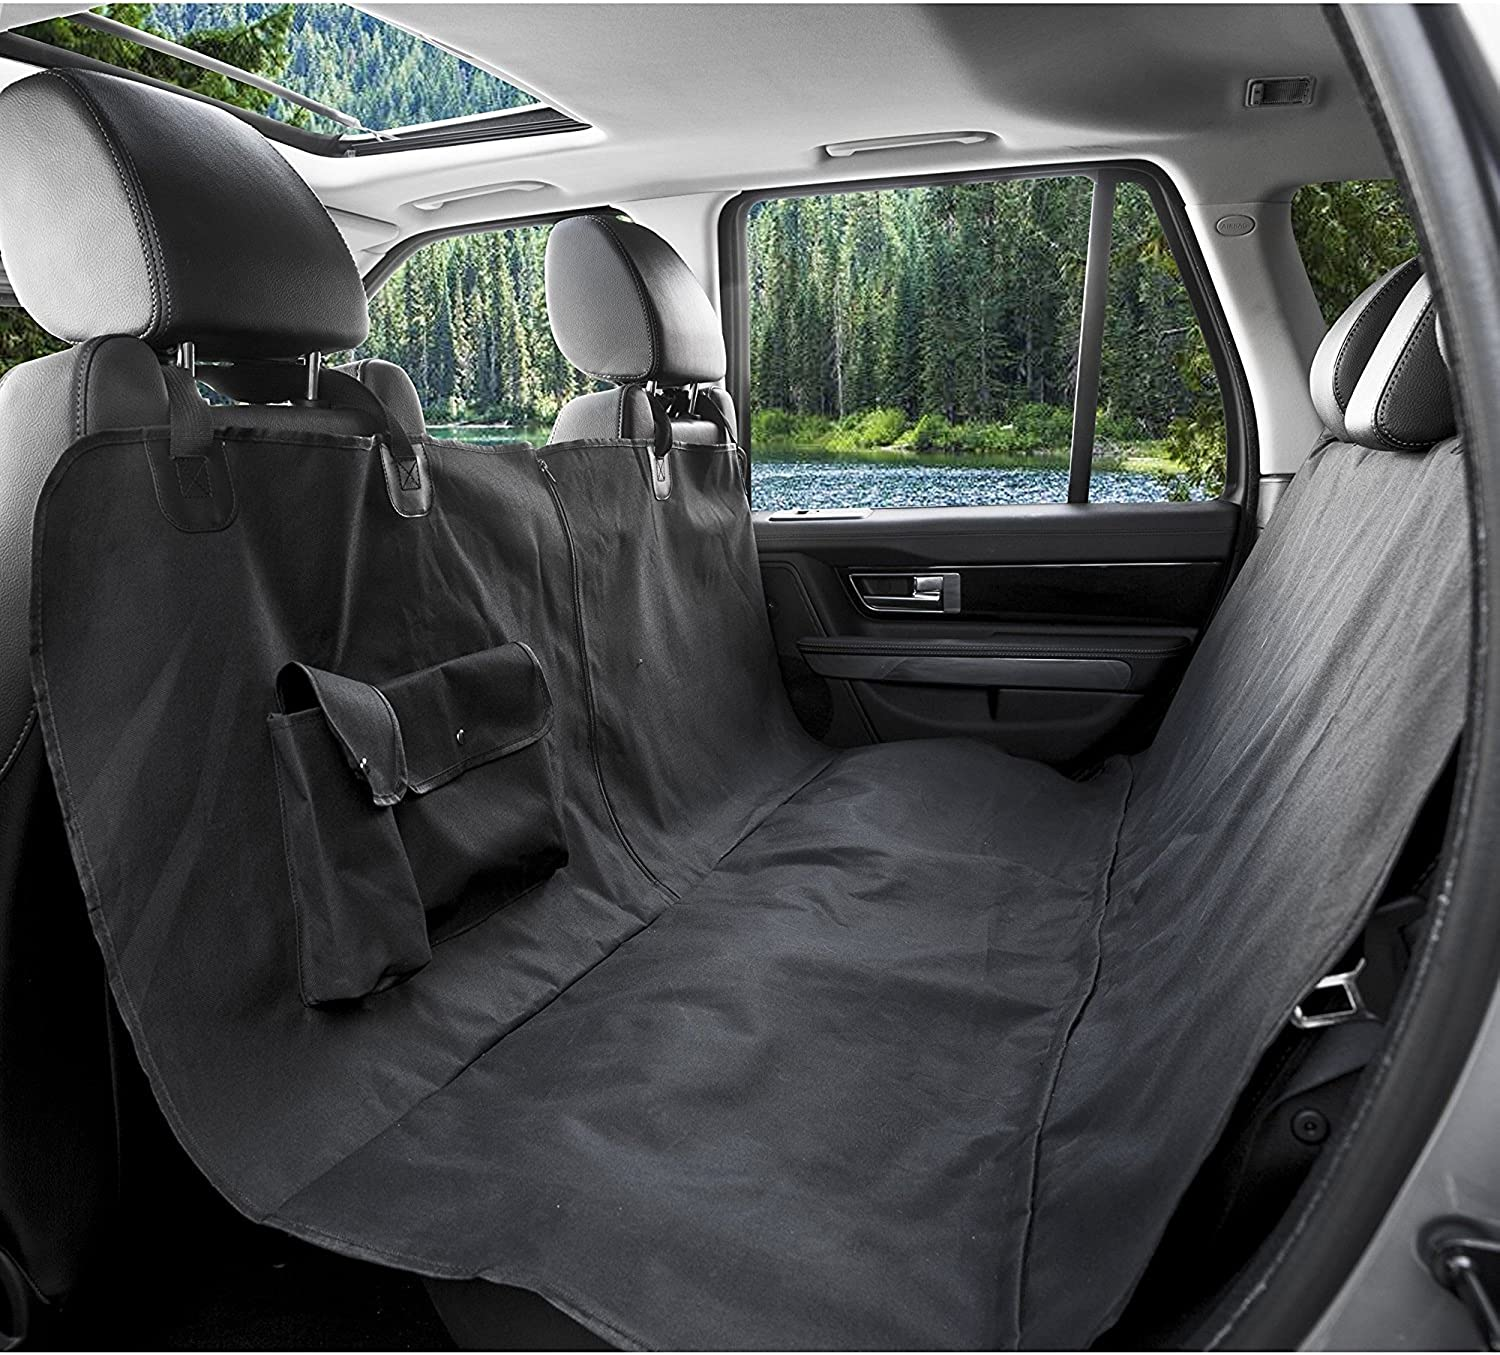 Bigear Pet Car Seat Cover, Waterproof Fabric Pet Seat Cover Predector Hammock Bed Mat Washable Dog Cat Safety Travel Blanket Cover for Car Truck SUVBlack